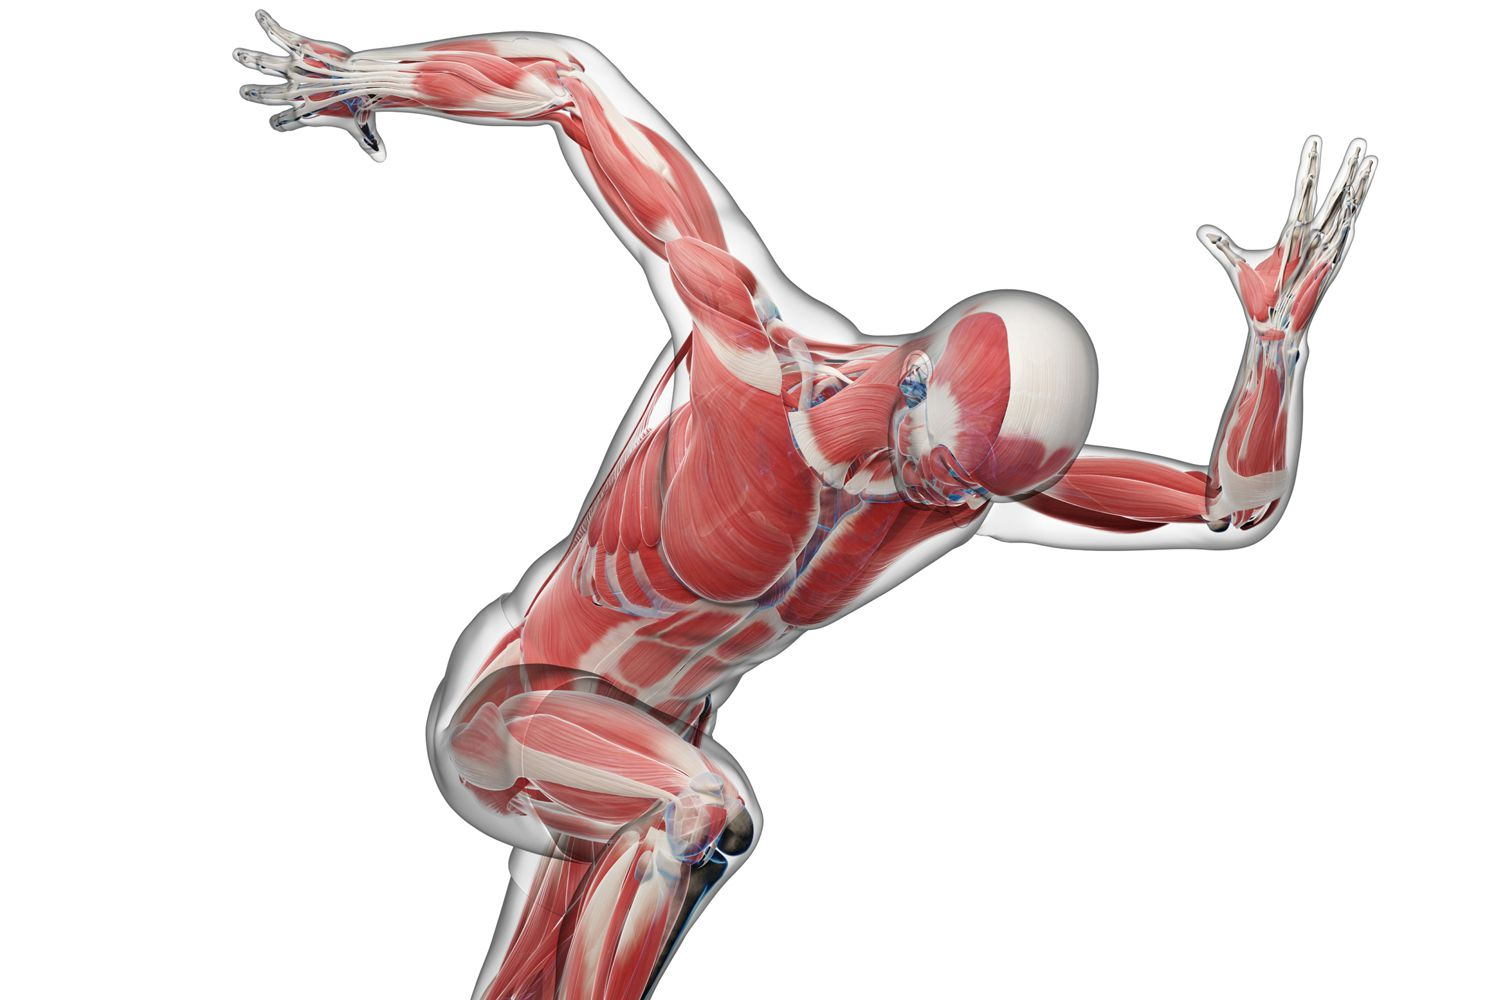 Biomechanics Overview And Applications